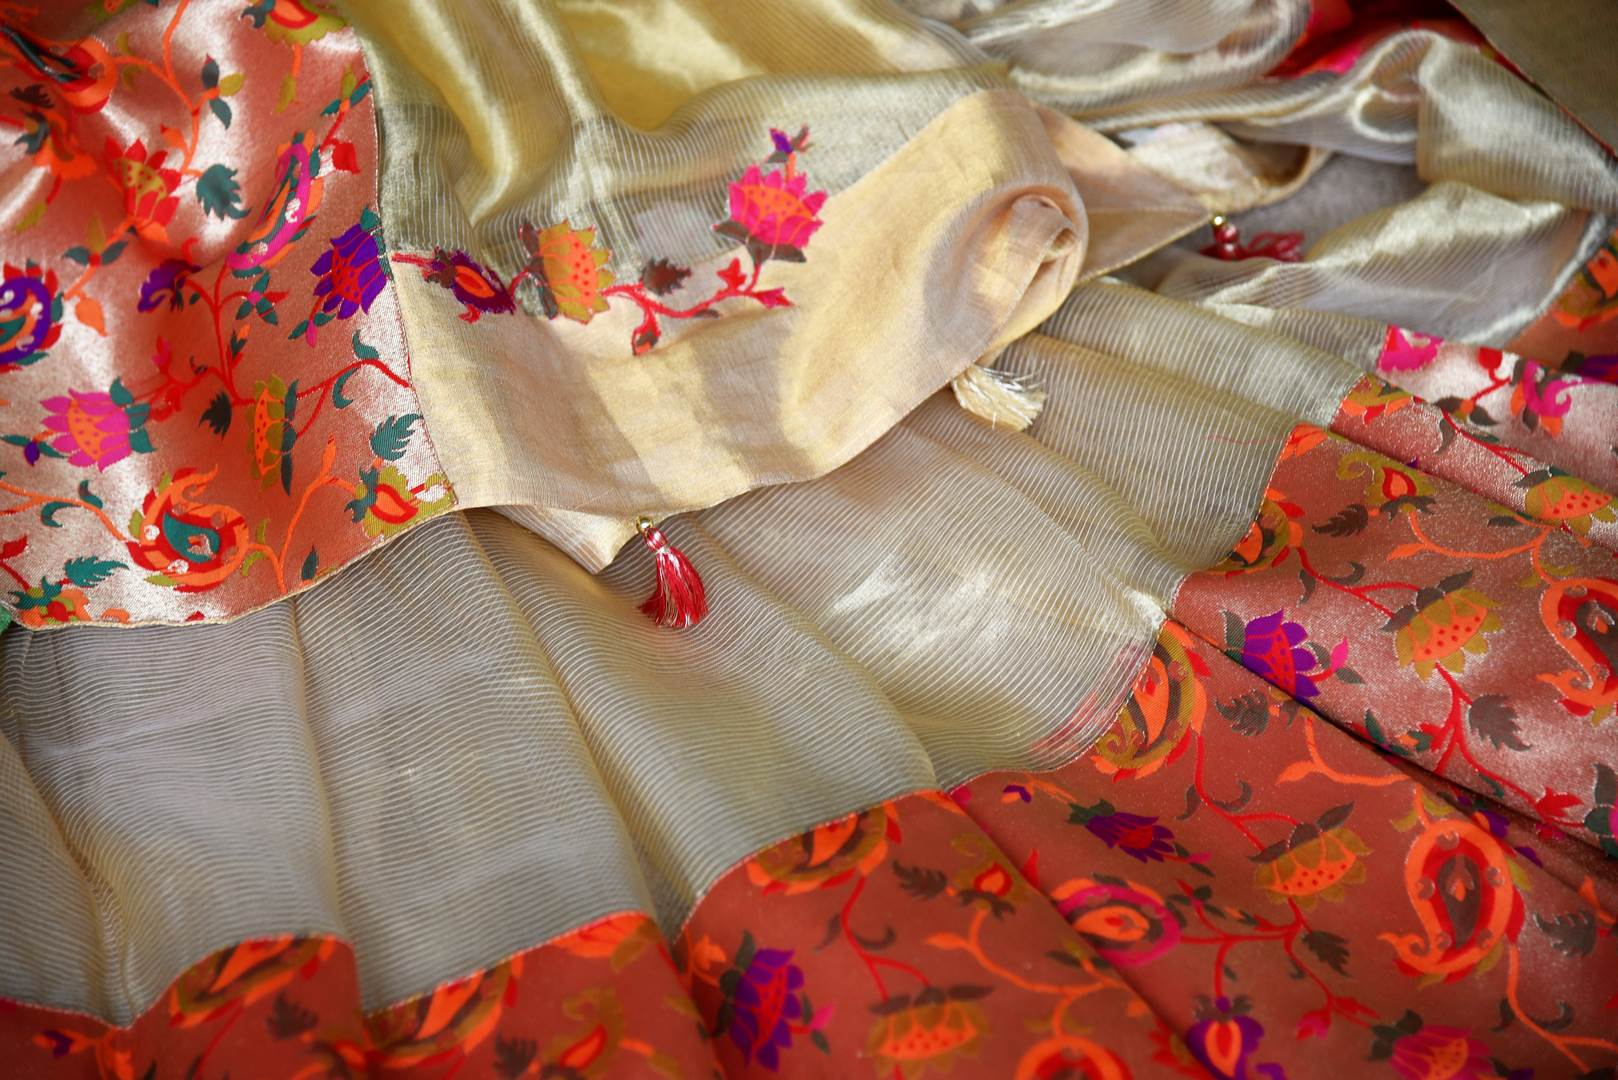 Buy gold color tissue silk saree with bright floral border online in USA. Shop stunning Banarasi saris in USA from Pure Elegance online store. Explore a world of Indian designer sarees, wedding sarees, pure silk sarees, embroidered saris and much more at our exclusive Indian clothing store in USA.-details